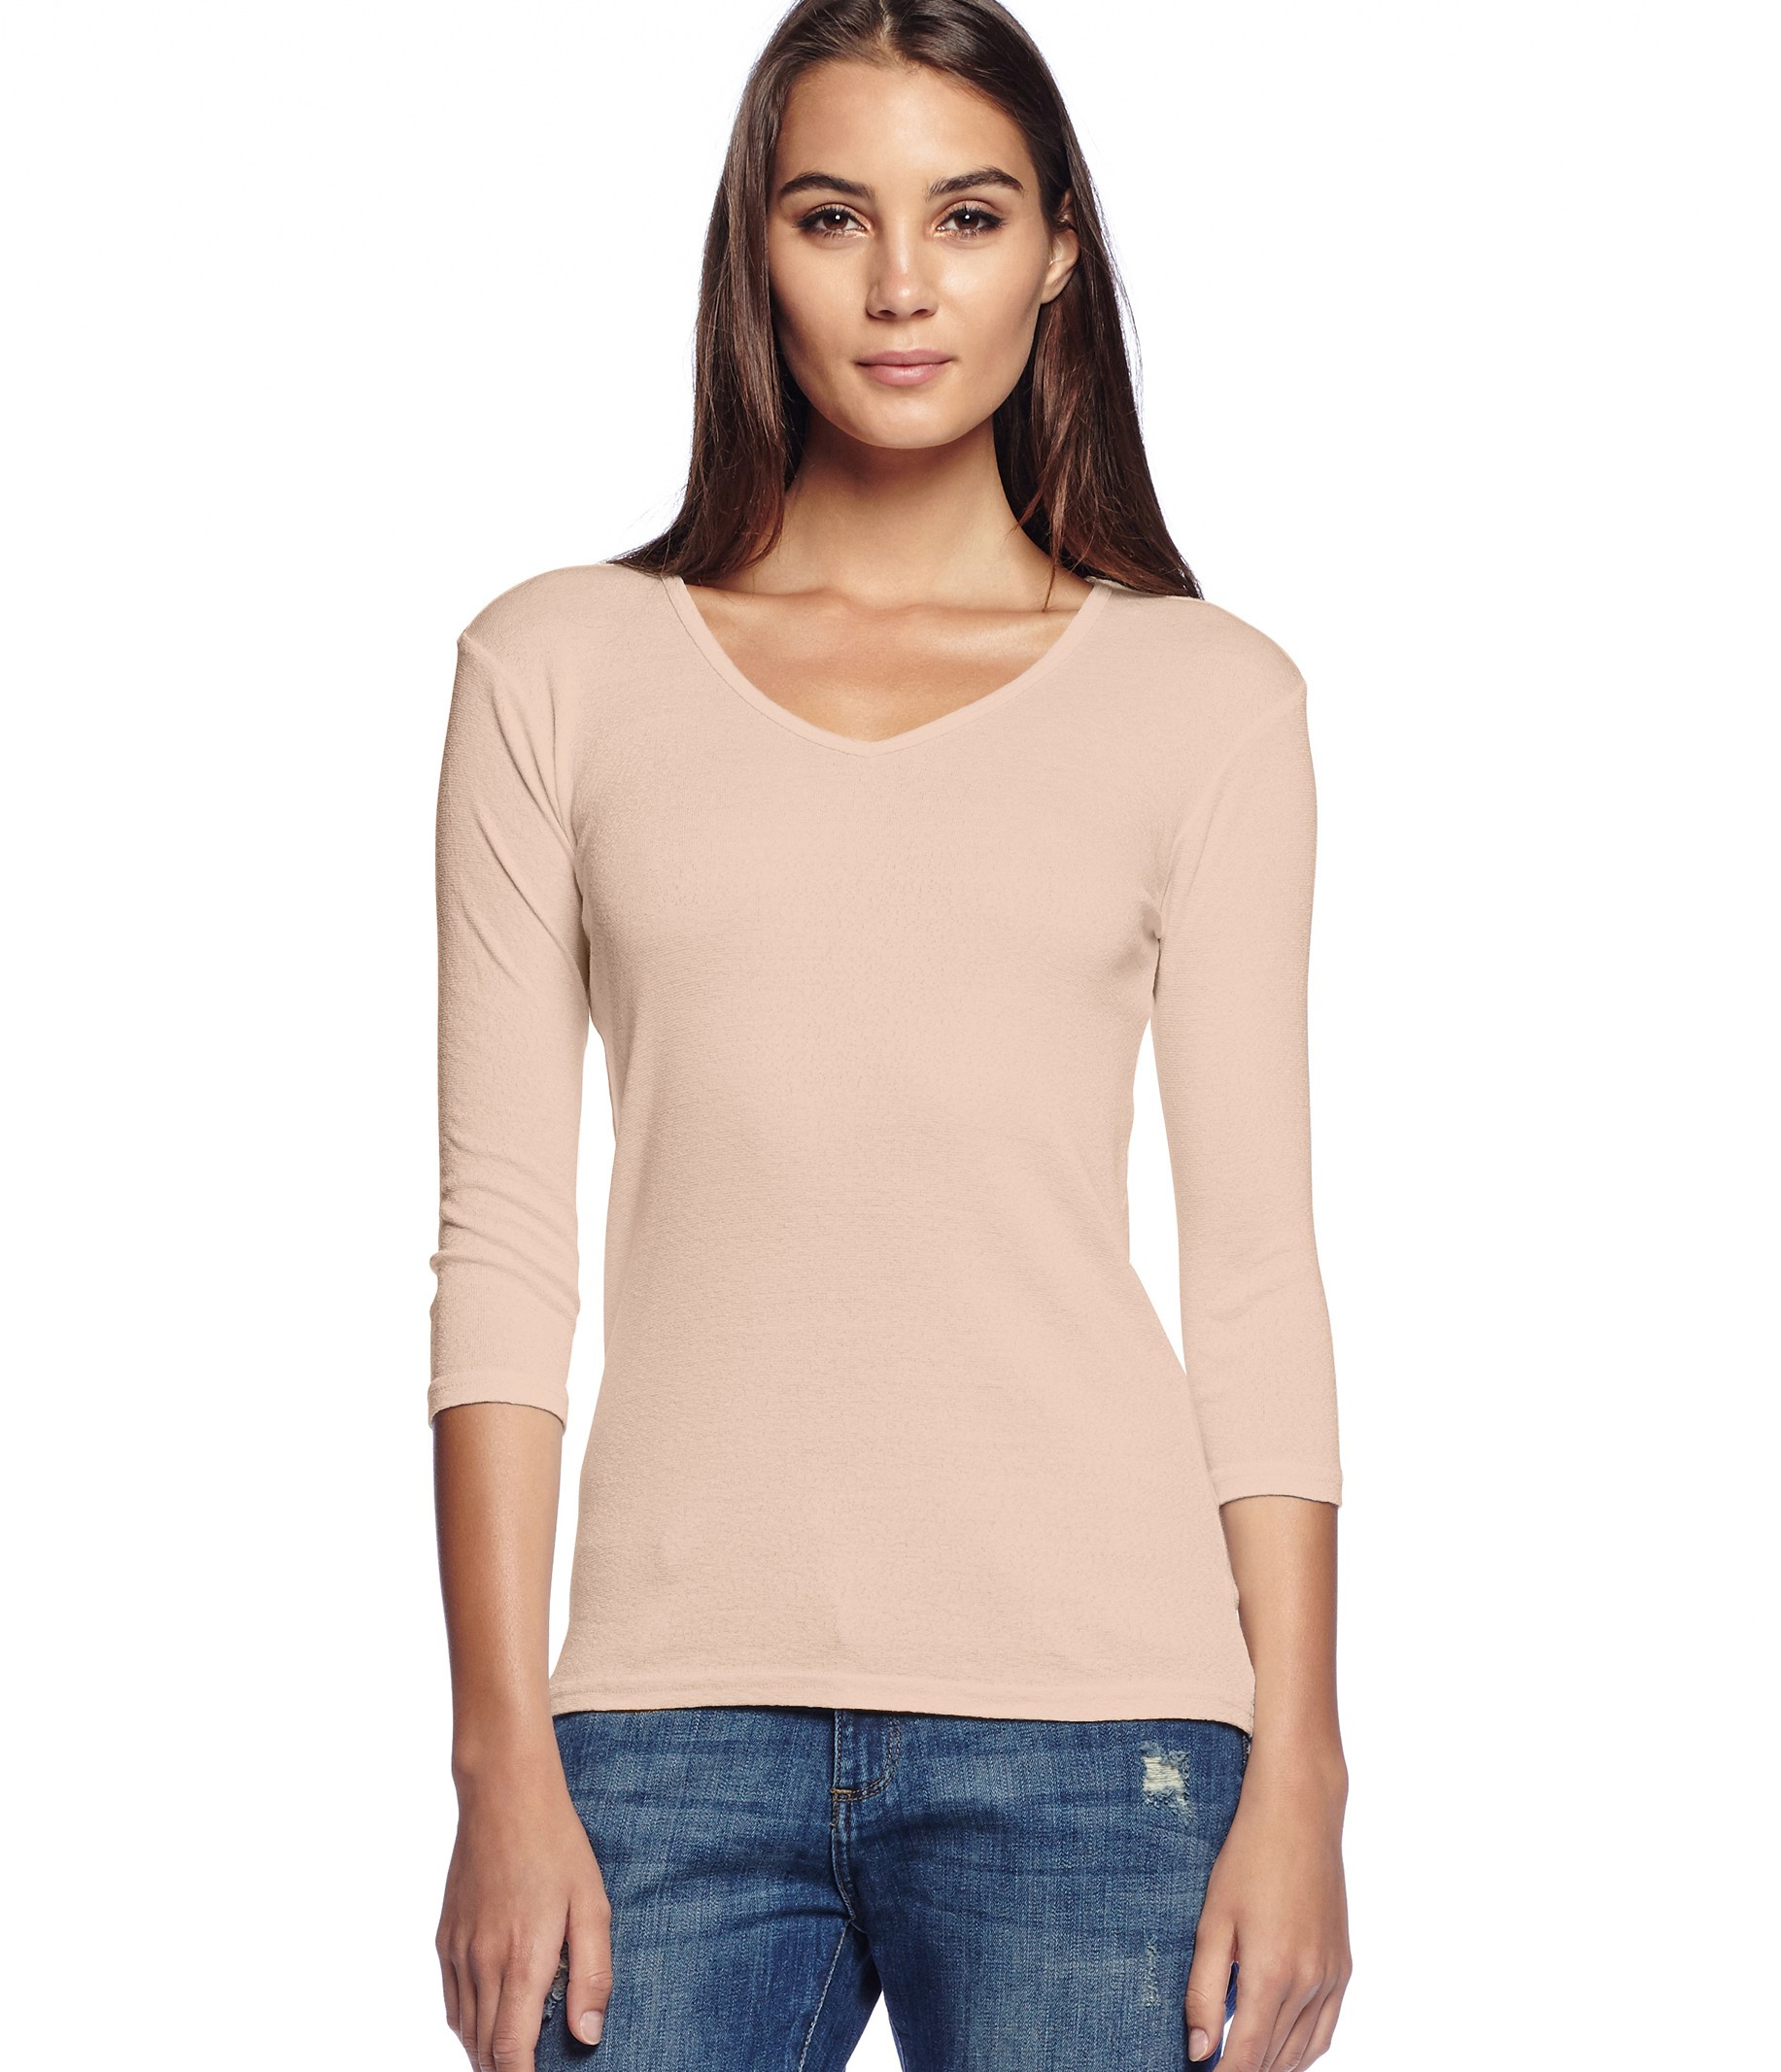 Michael stars shine middle sleeve v neck tee in beige for Michael stars t shirts on sale